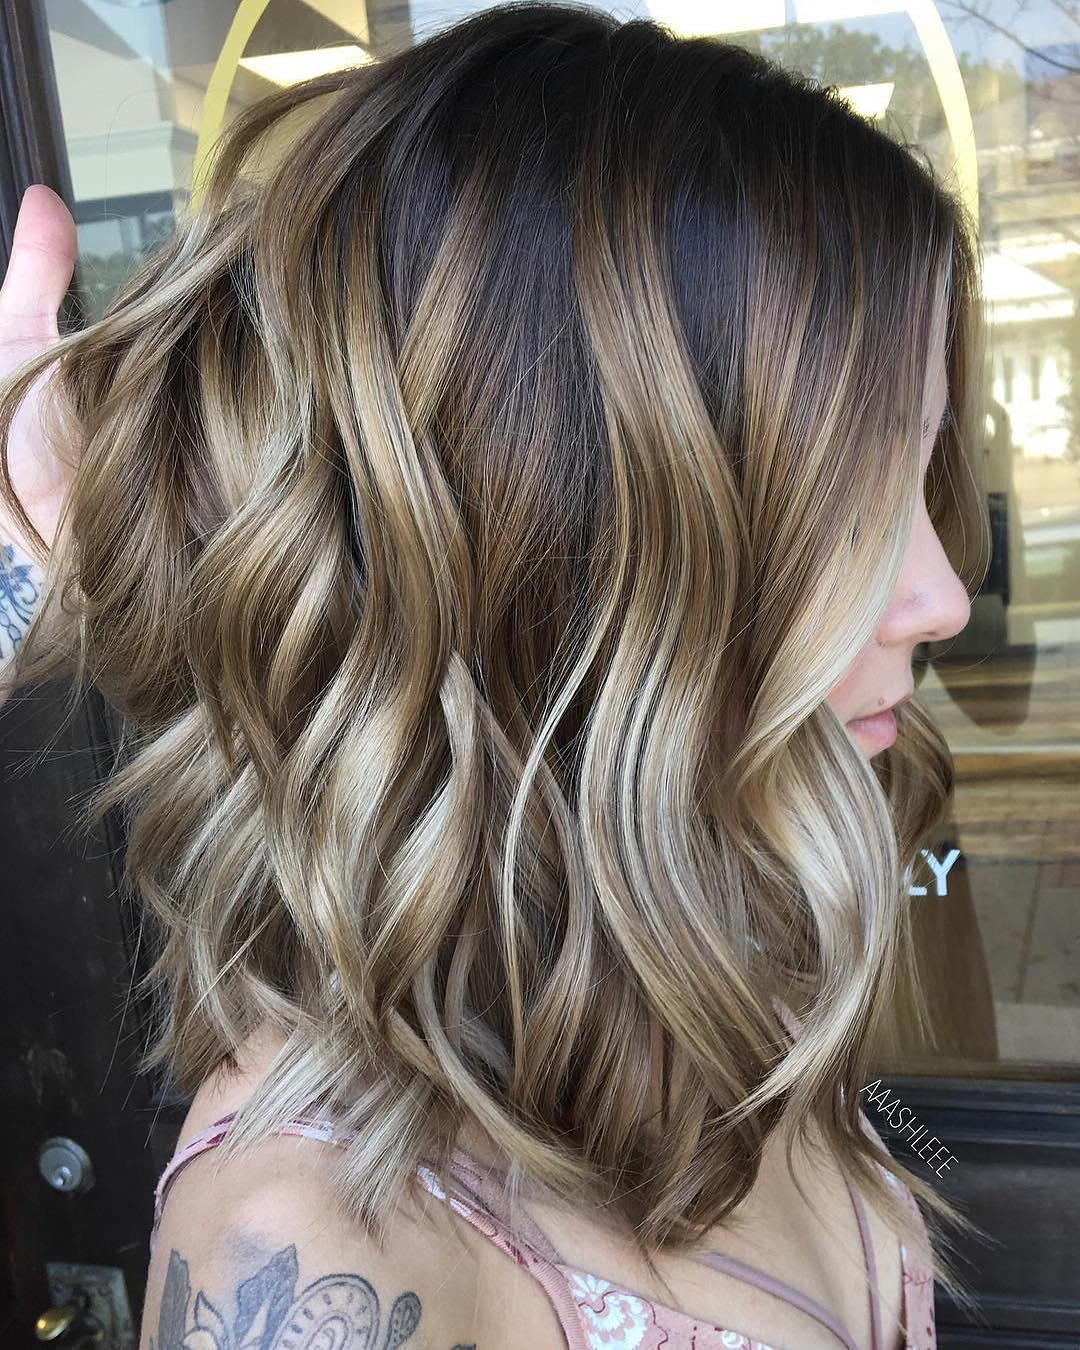 10 Ombre Balayage Hairstyles For Medium Length Hair, Hair Color 2019 In 2017 Medium Hairstyles With Balayage (Gallery 4 of 20)